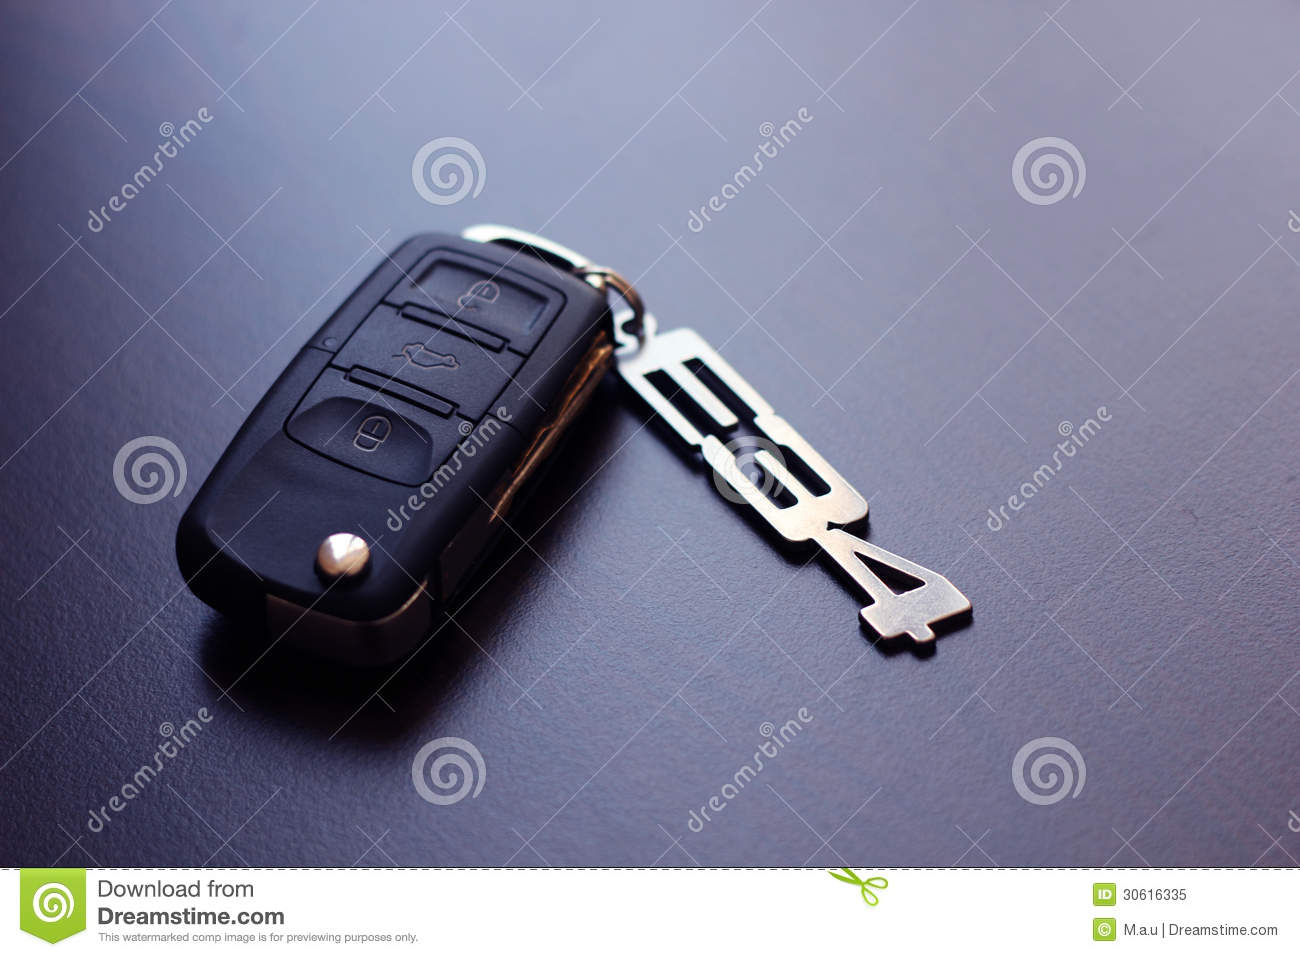 housing bmw keys key a ebay as i media from for post ordered recently tumblr flip one pax replacement cheap